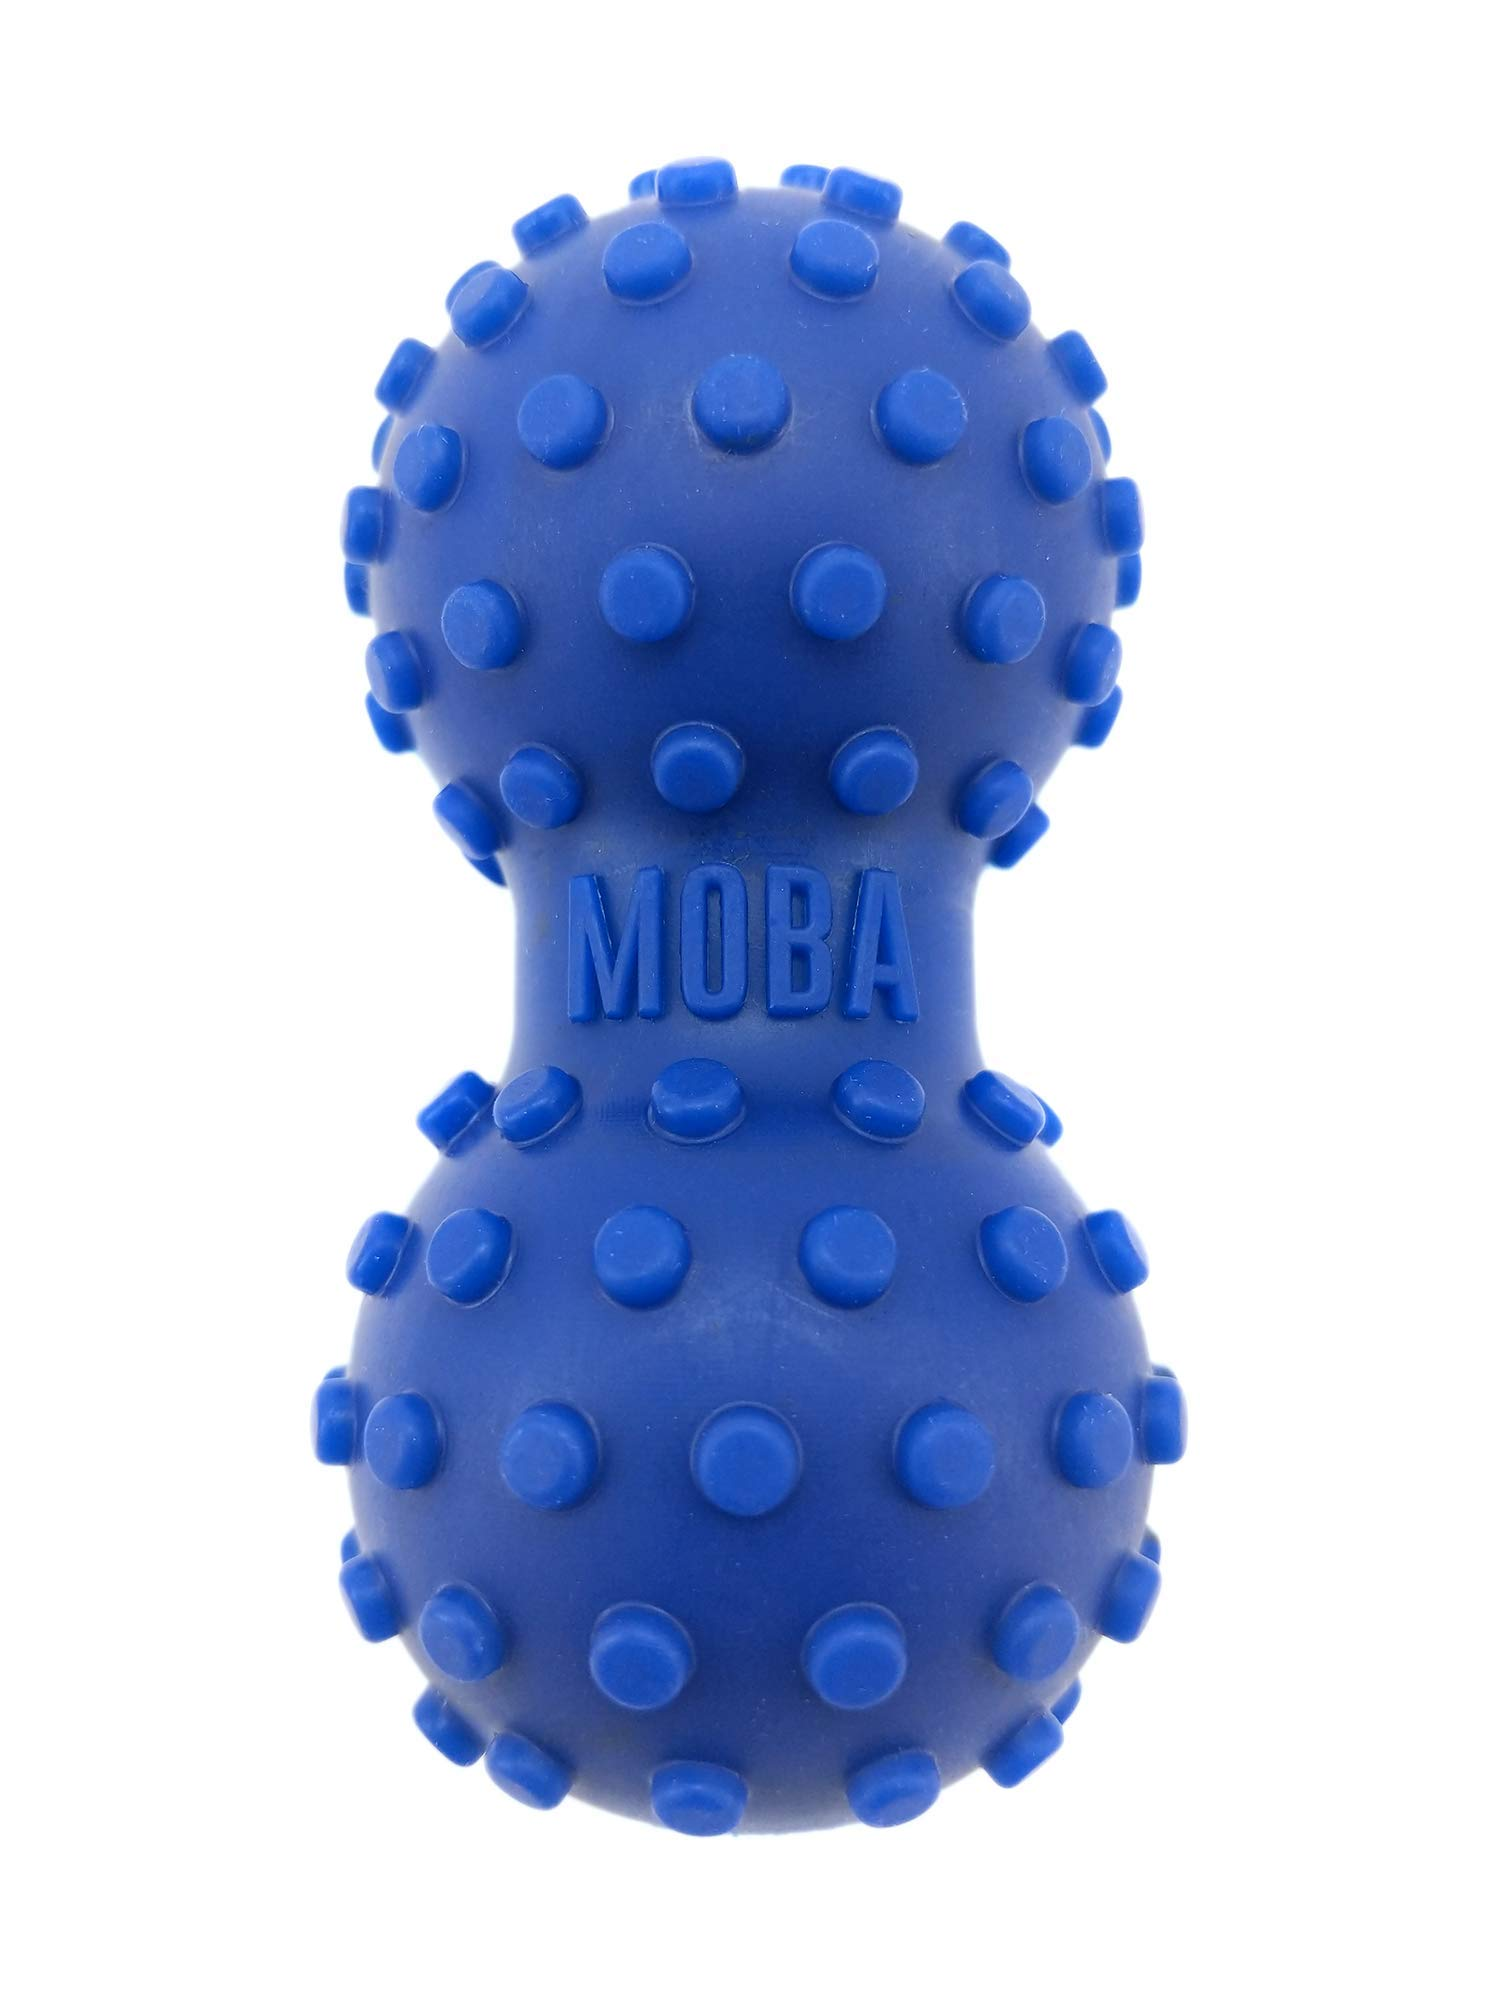 Moba Mobility - Peanut Ball Massage Roller - Vibrating Double Ball Roller Designed for Back, Neck, and Total Body Muscle Relief - Great for Trigger Point Myofascial Release and Still Point Induction by Moba Mobility, LLC